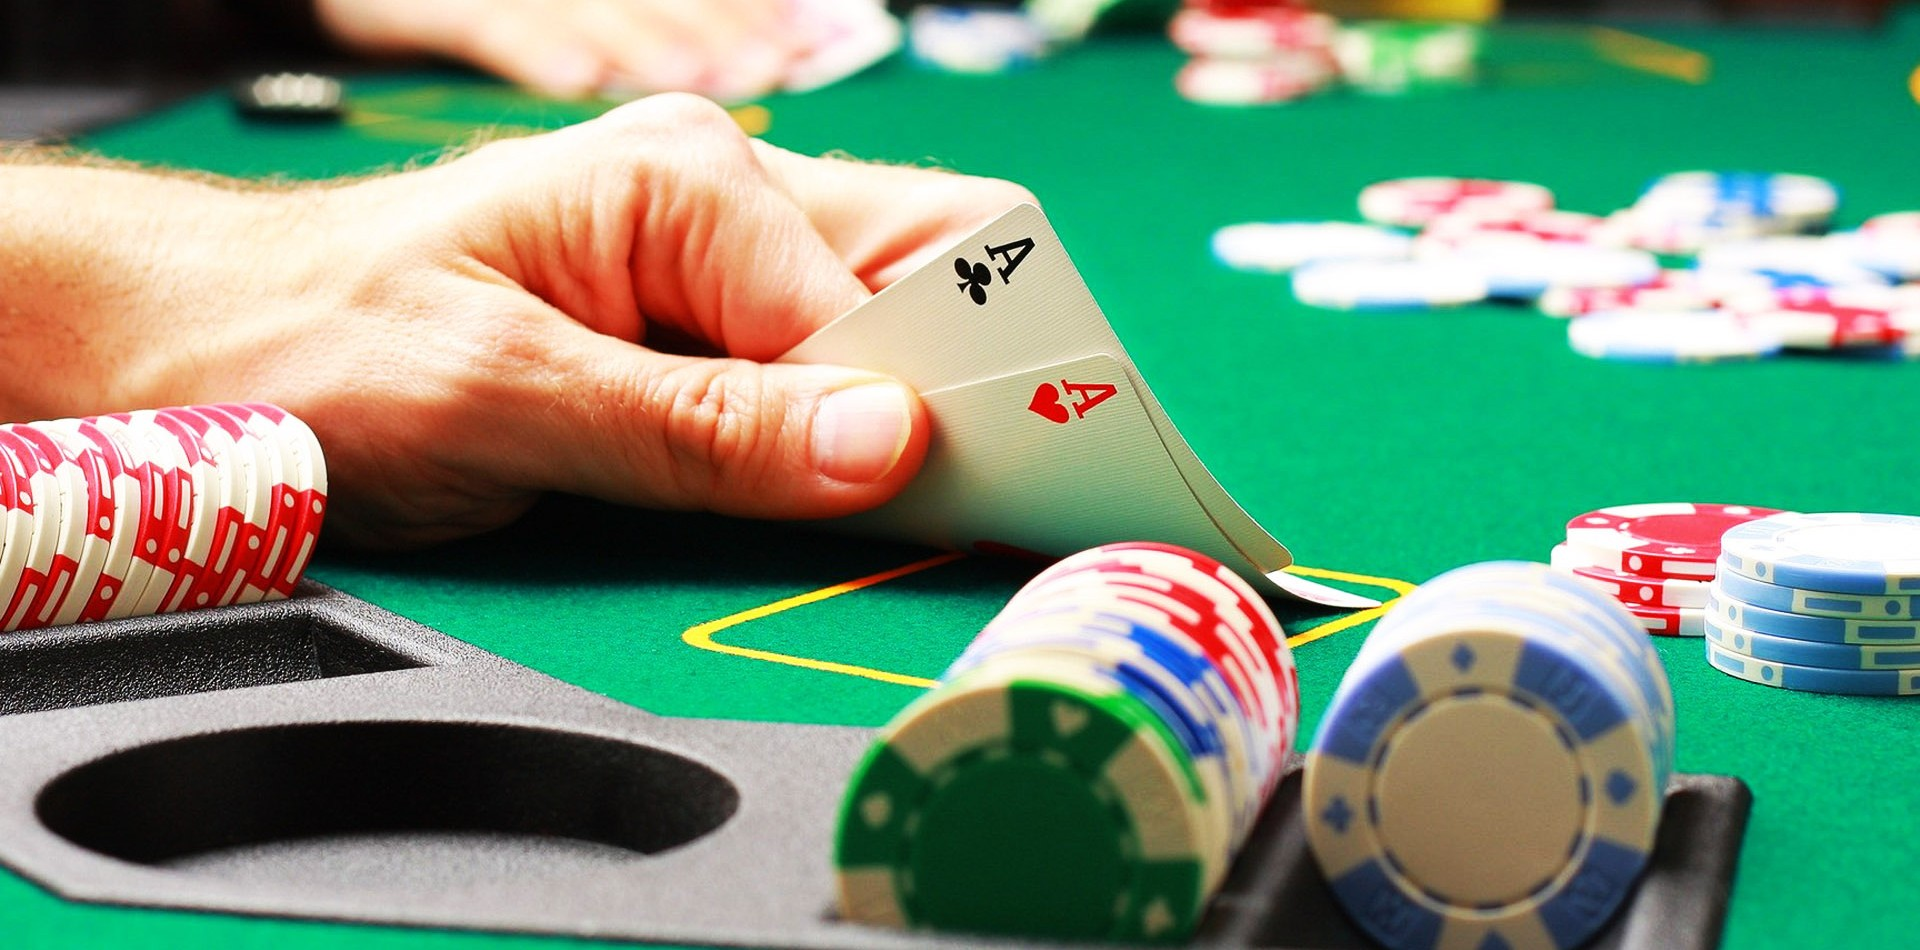 What is Rake back in Poker?